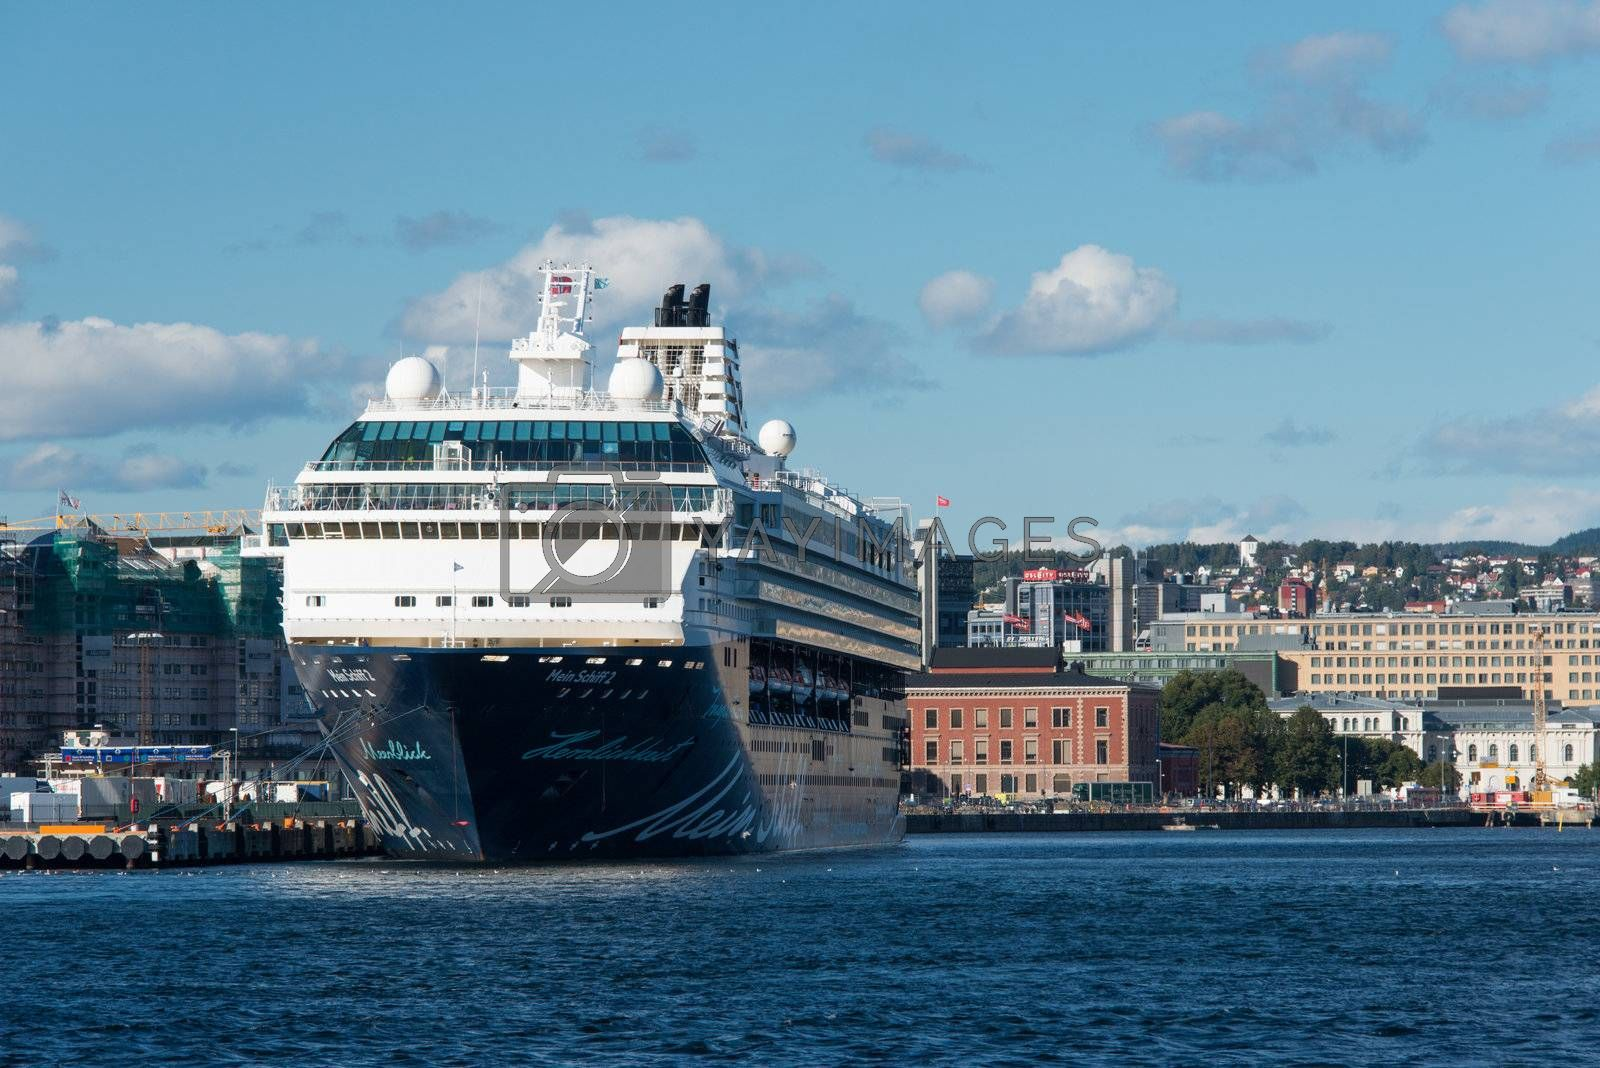 MV Mein Schiff 2 is a Century class cruise ship by Nanisimova